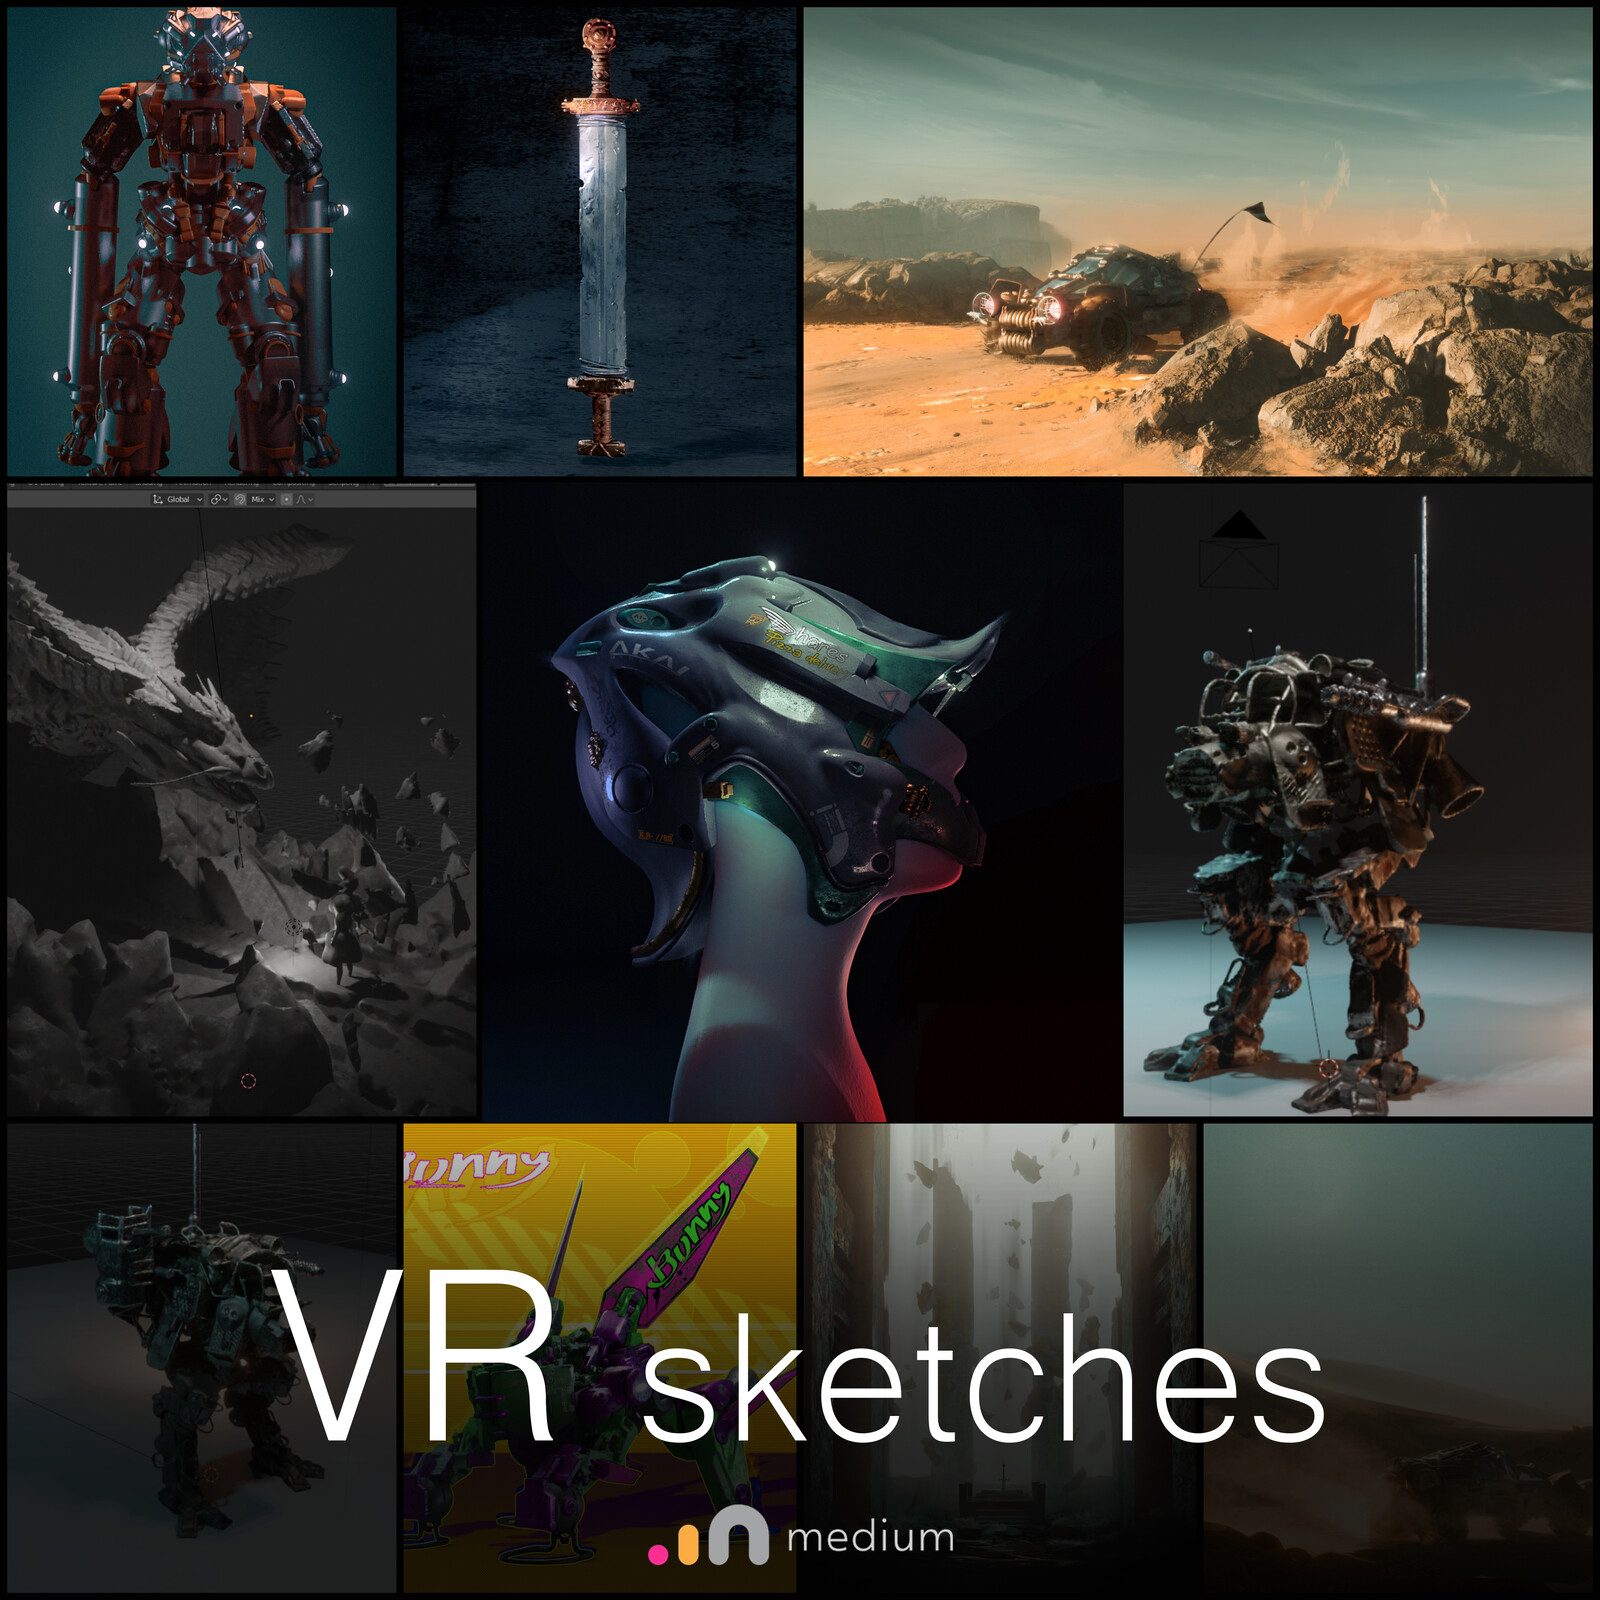 VR sketches